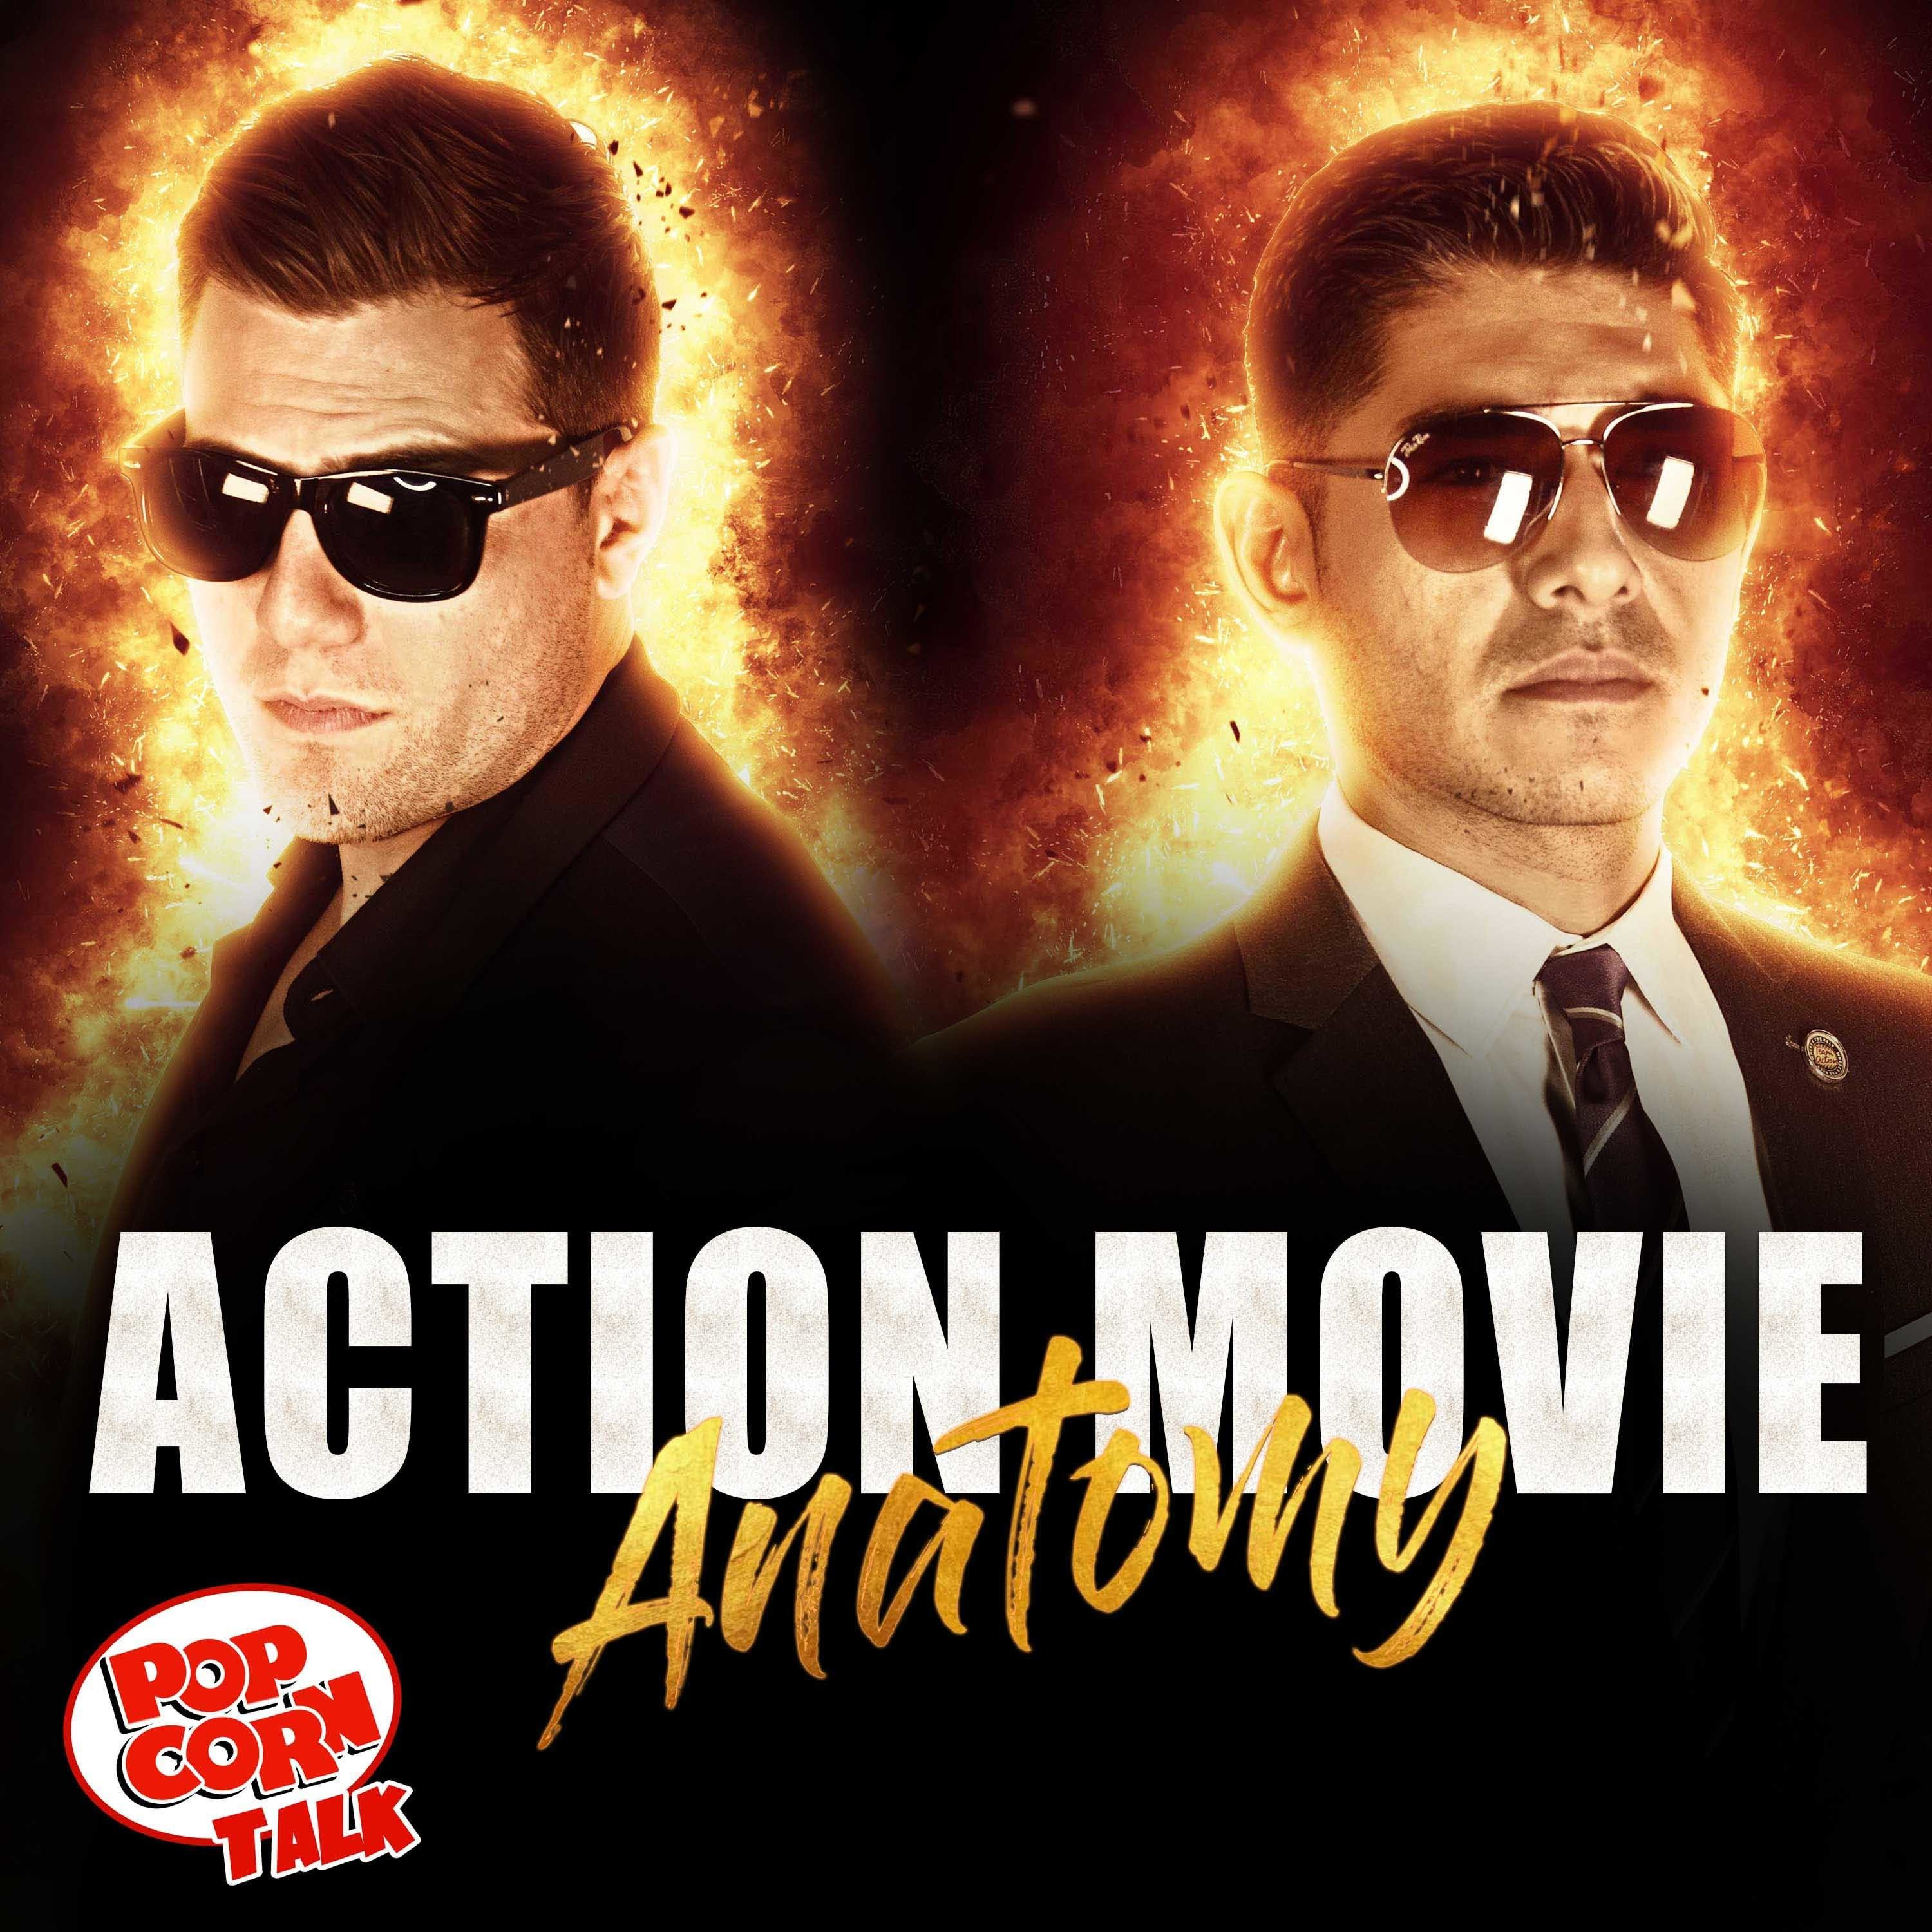 54268d1d51 Action Movie Anatomy by Popcorn Talk Network on Apple Podcasts